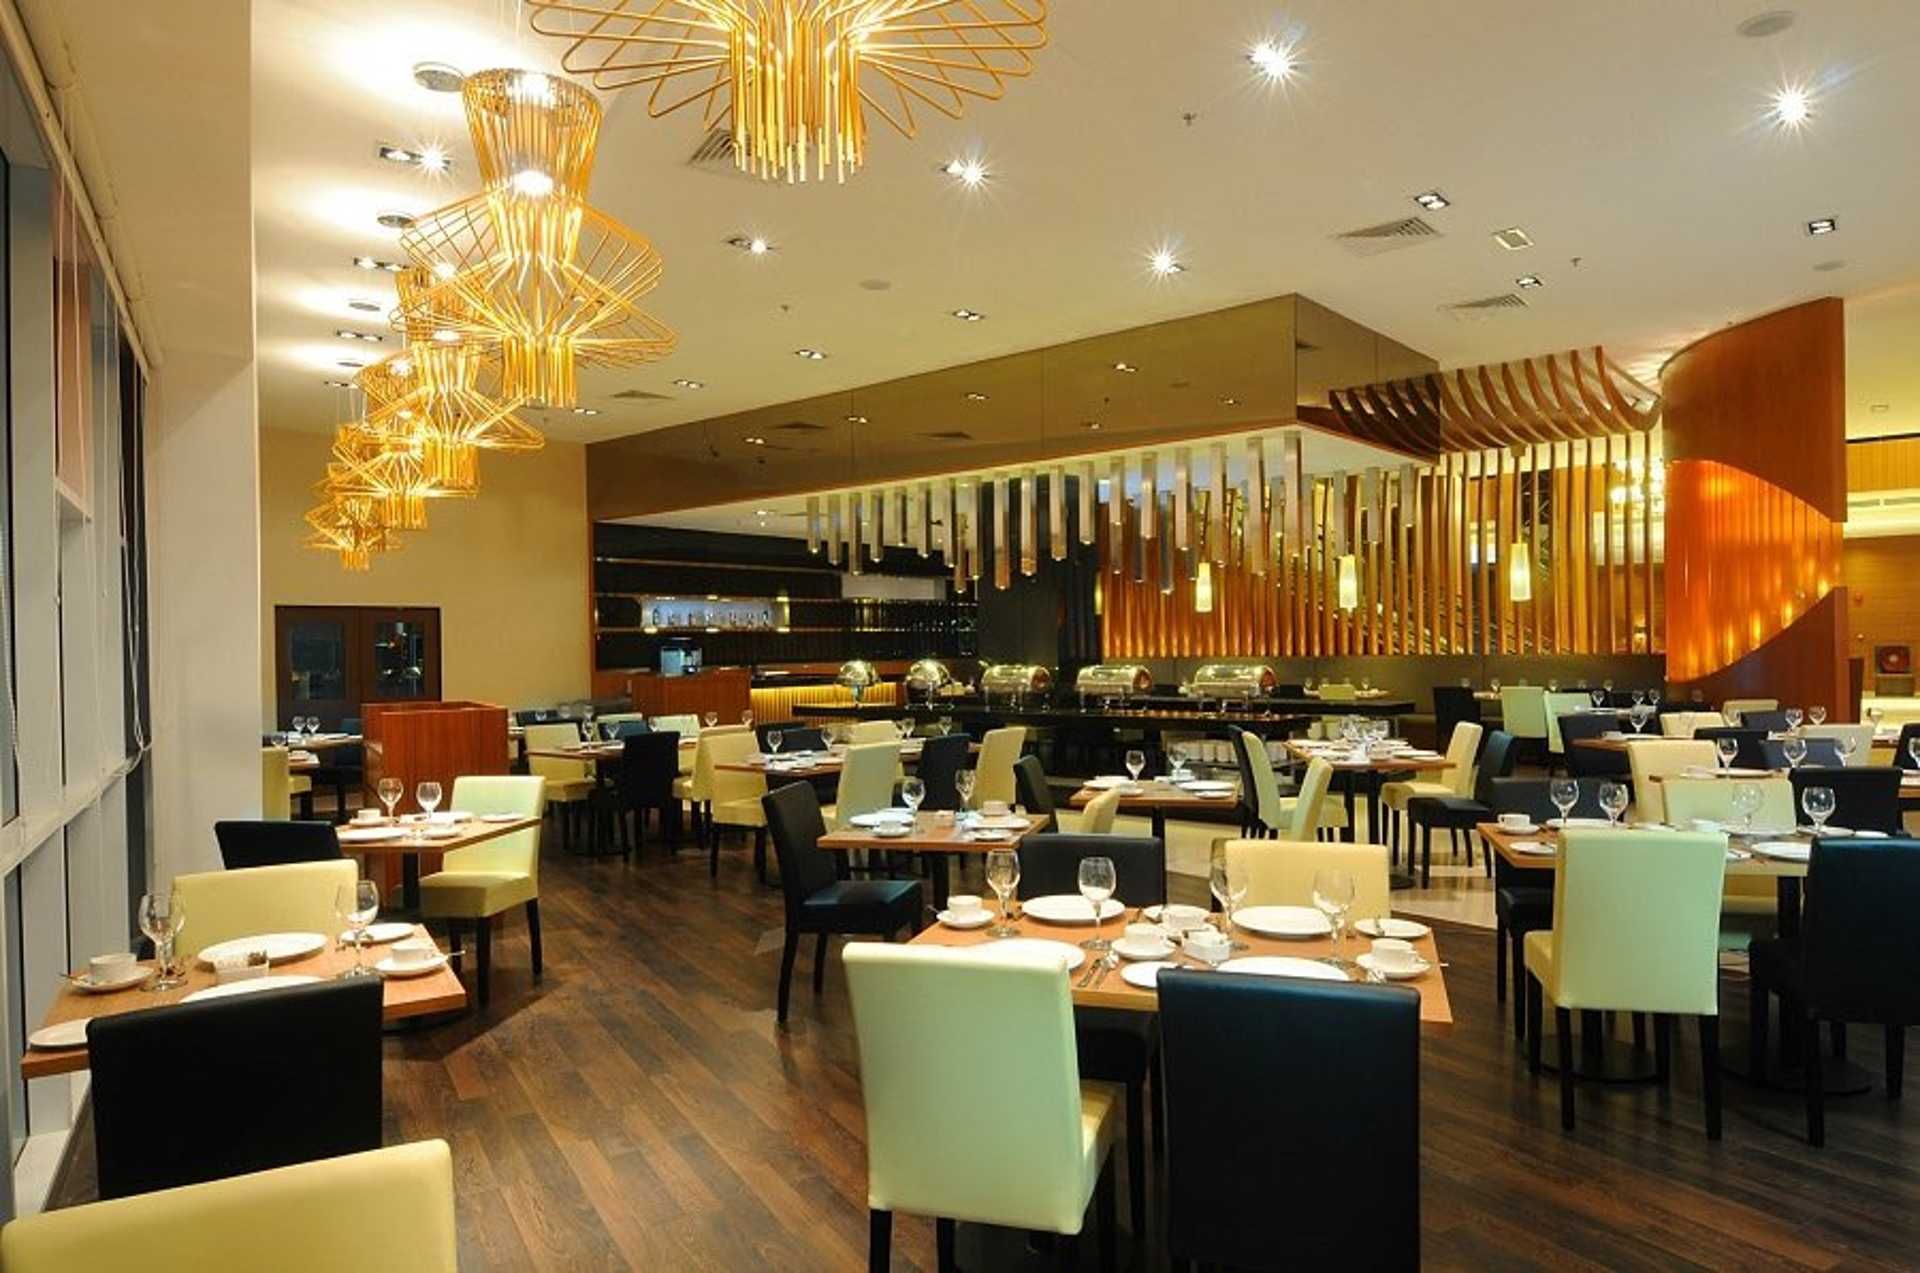 The warm and inviting interior of Olla Restaurant